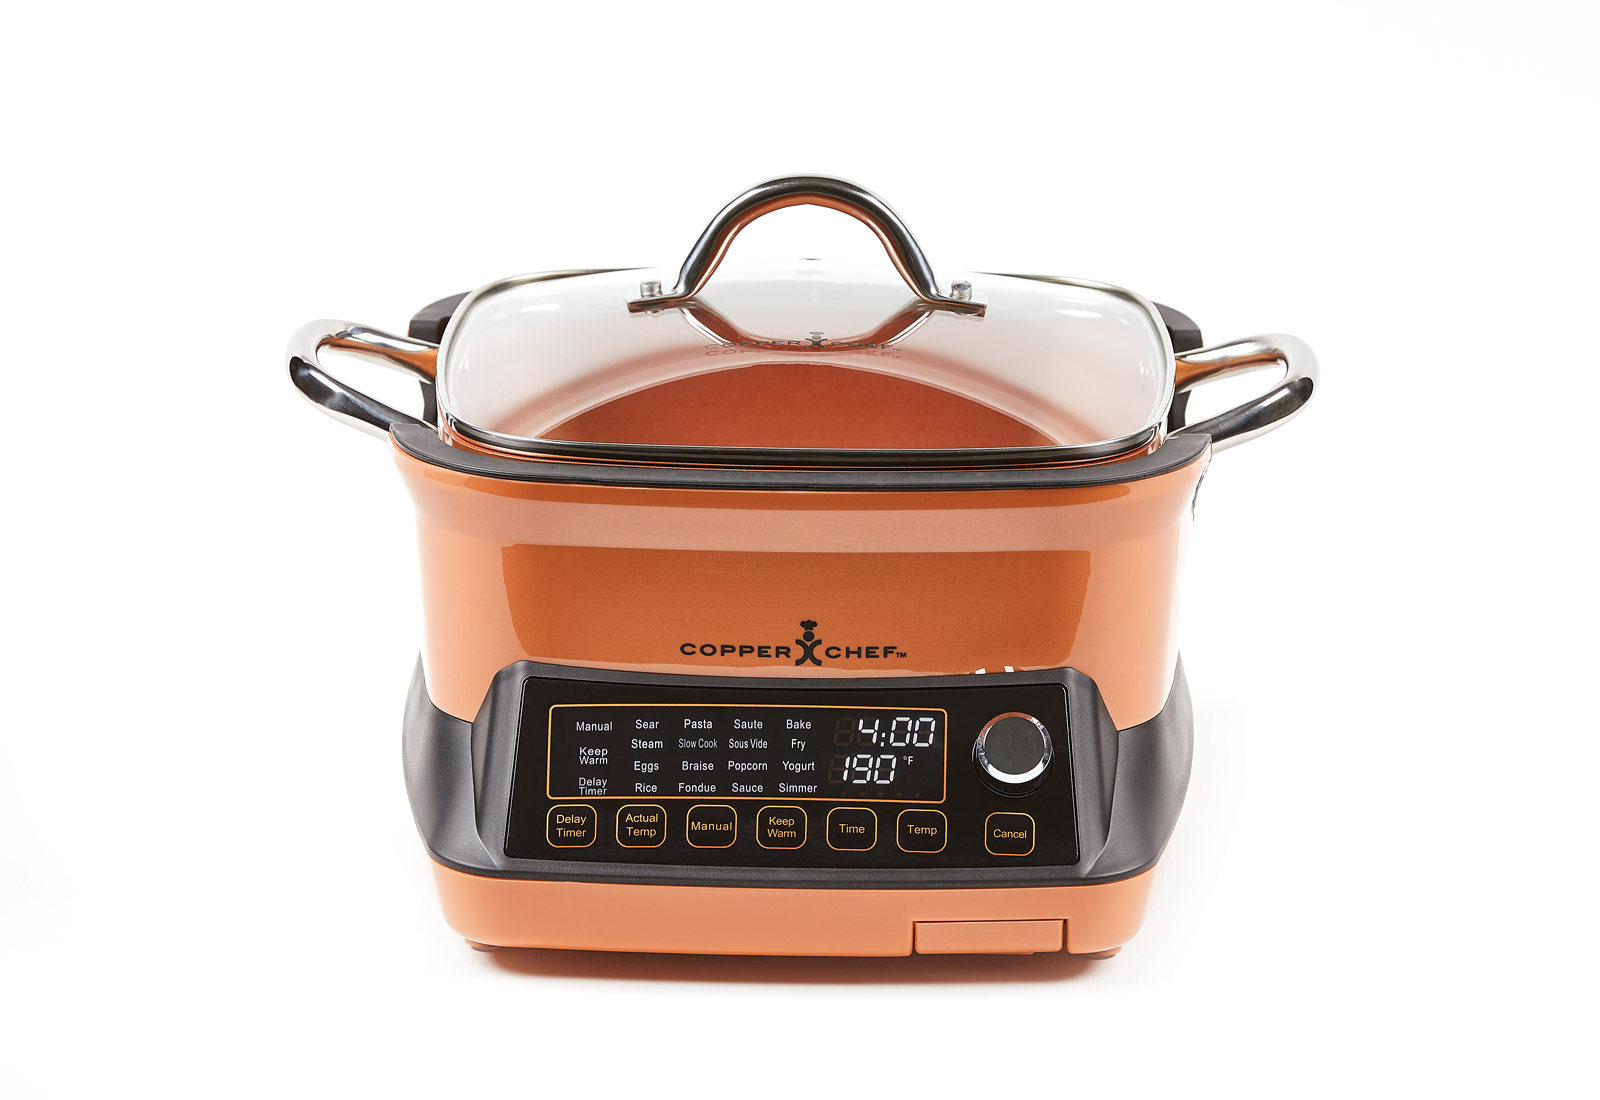 Copper Chef Smart Cooker Product Image